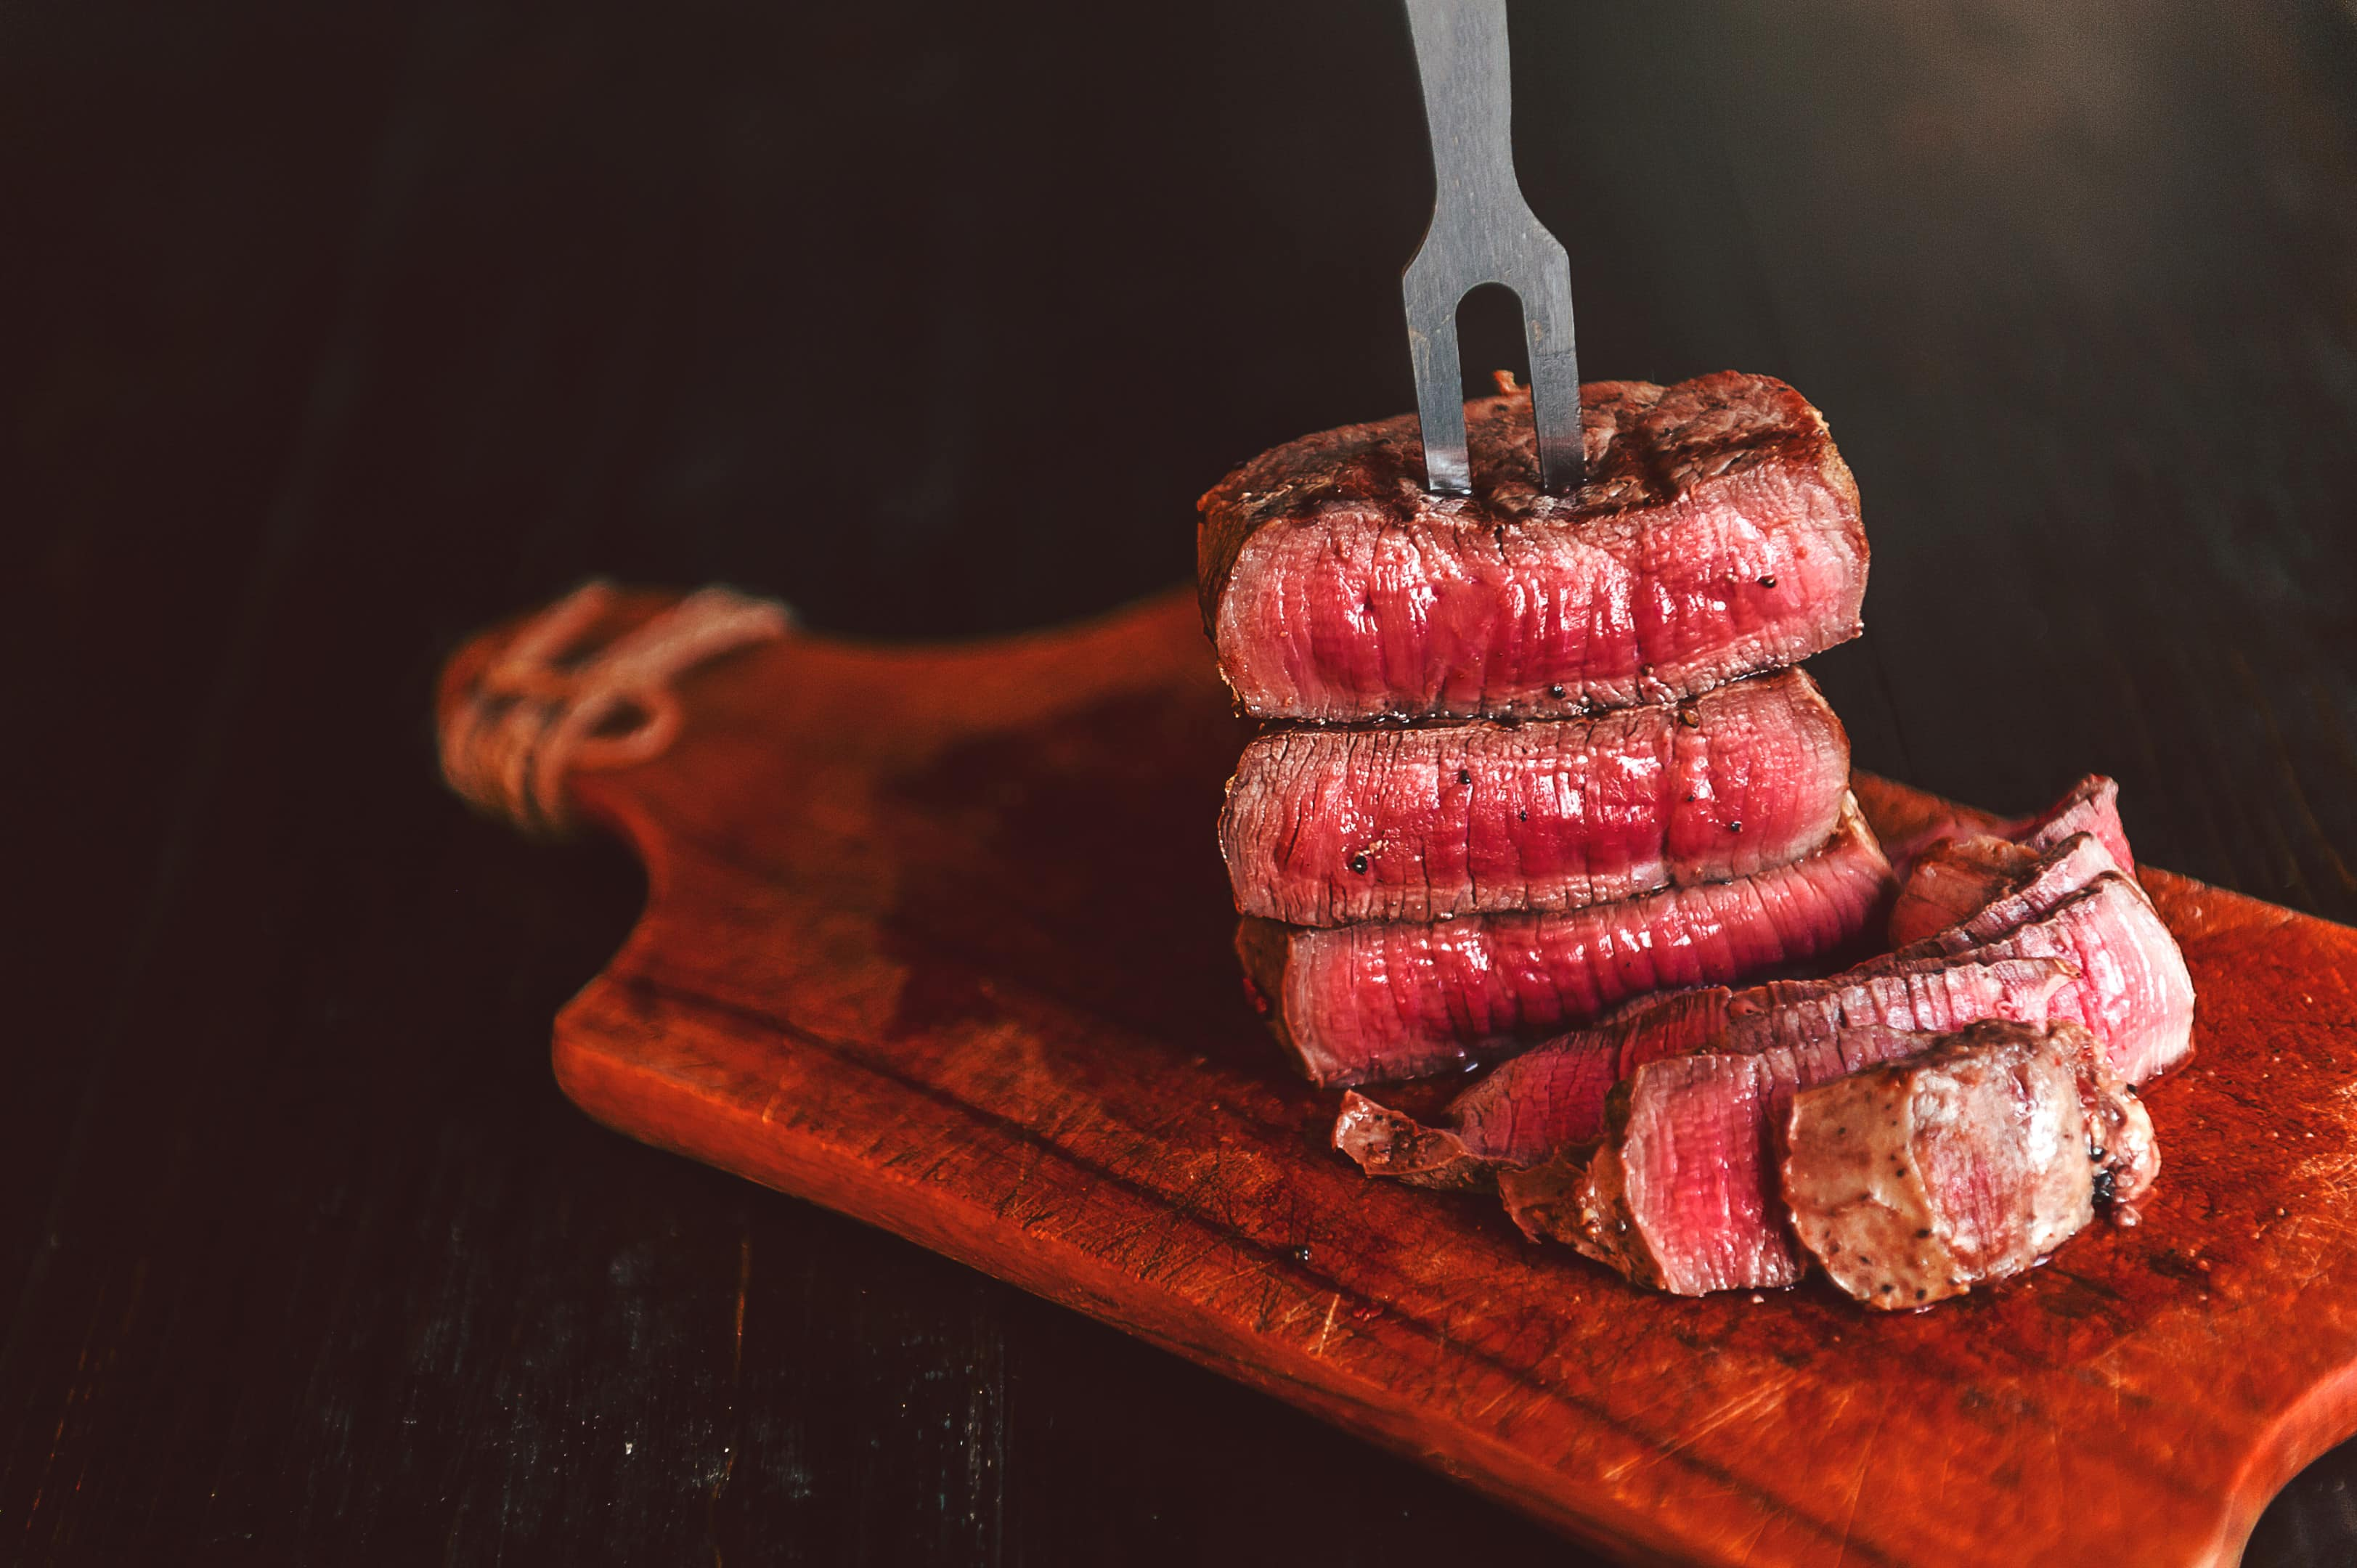 Beef steak with fork on wooden board